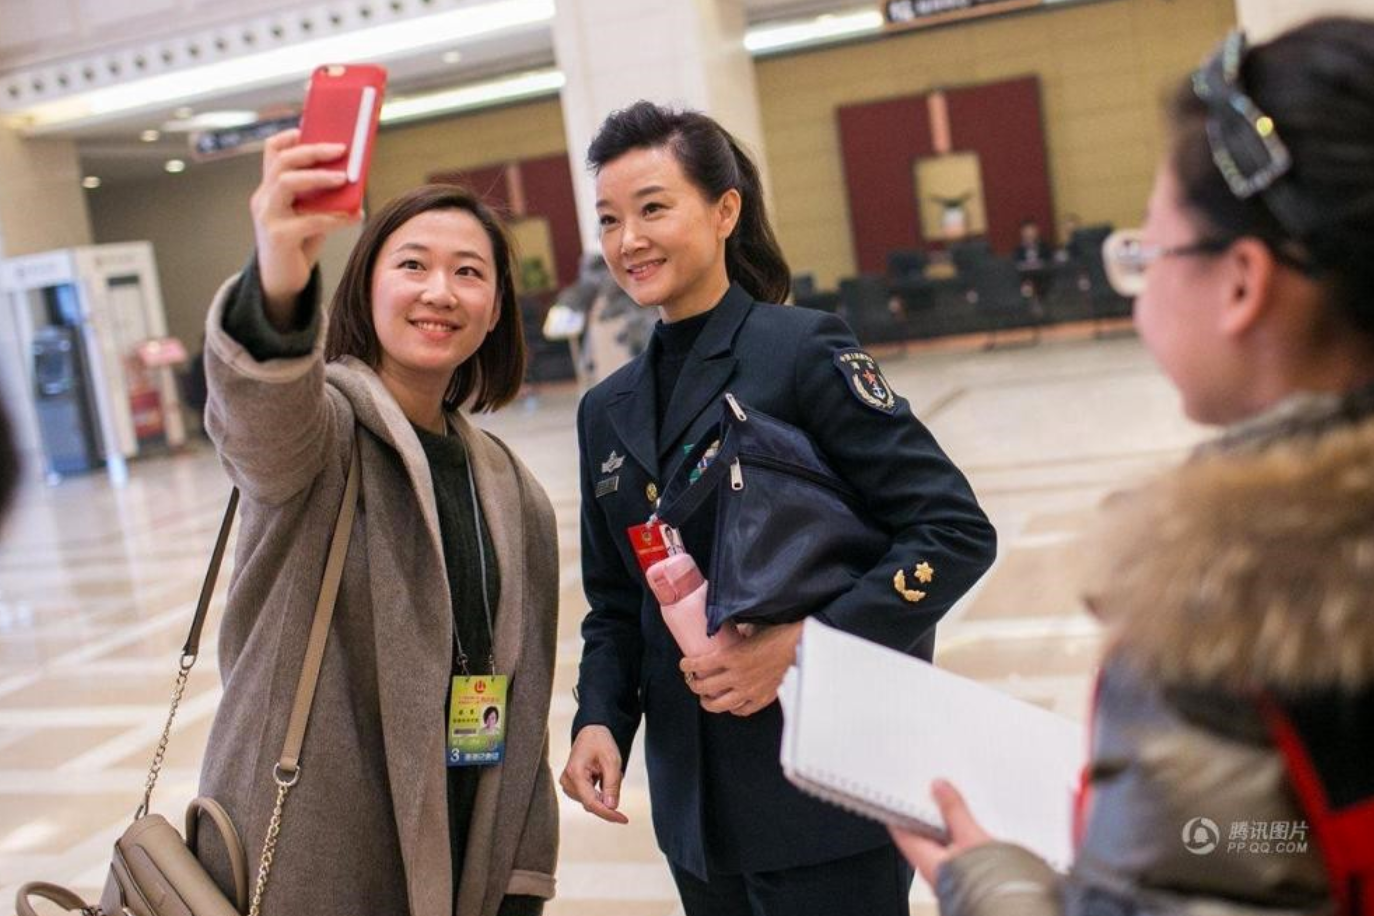 A reporter takes a selfie in 2016 with a famous singer Song Zuying, a delegate to the annual Chinese People's Political Consultative Congress. This photo appeared that year in a photo series featuring female journalists taking selfies at the NPC.